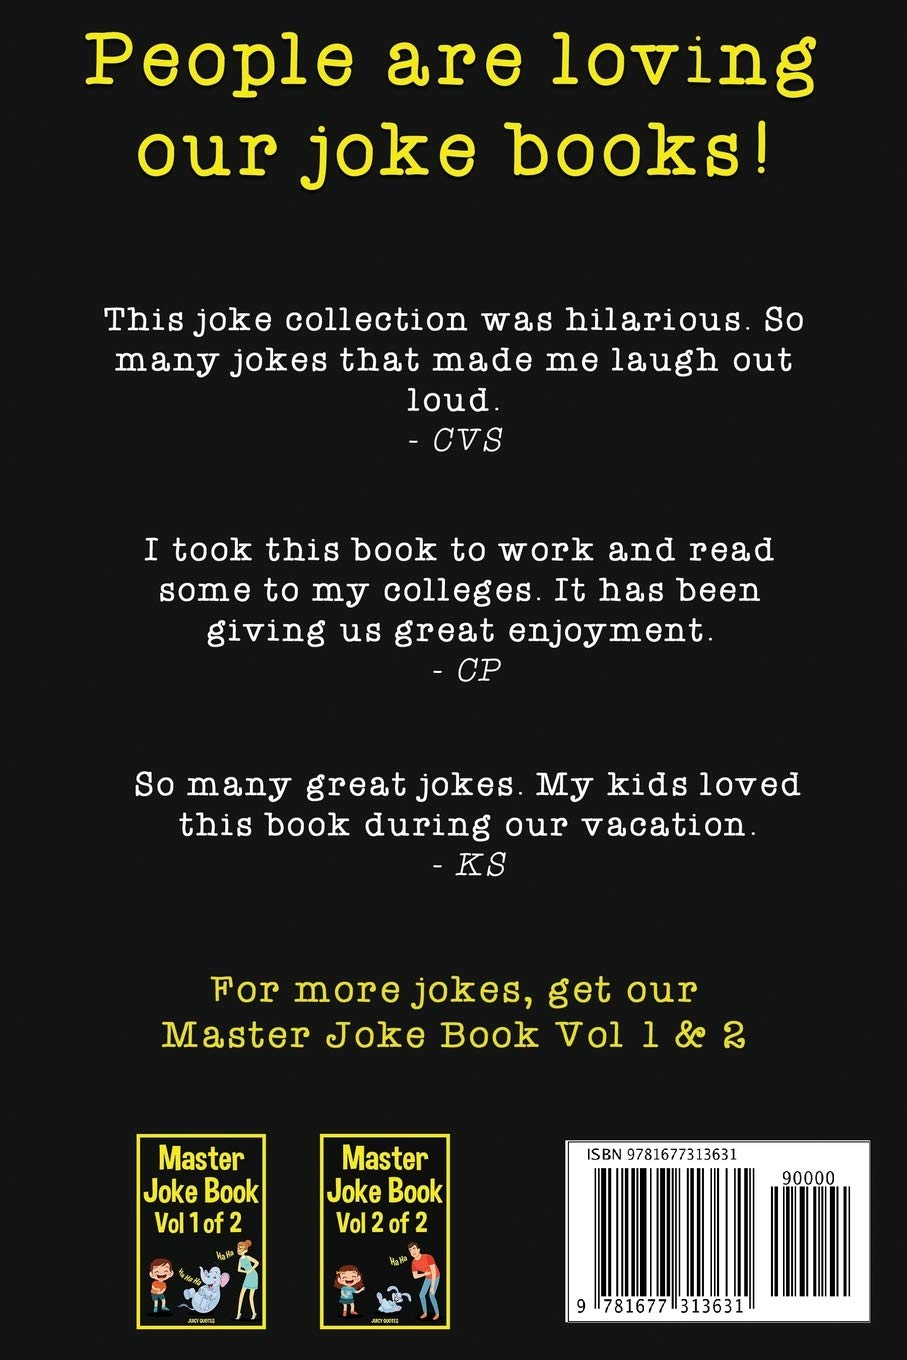 Clean Joke Book For Adults Funny Clean Jokes And Puns For Grown Ups Juicy Quotes 9781677313631 Amazon Com Books